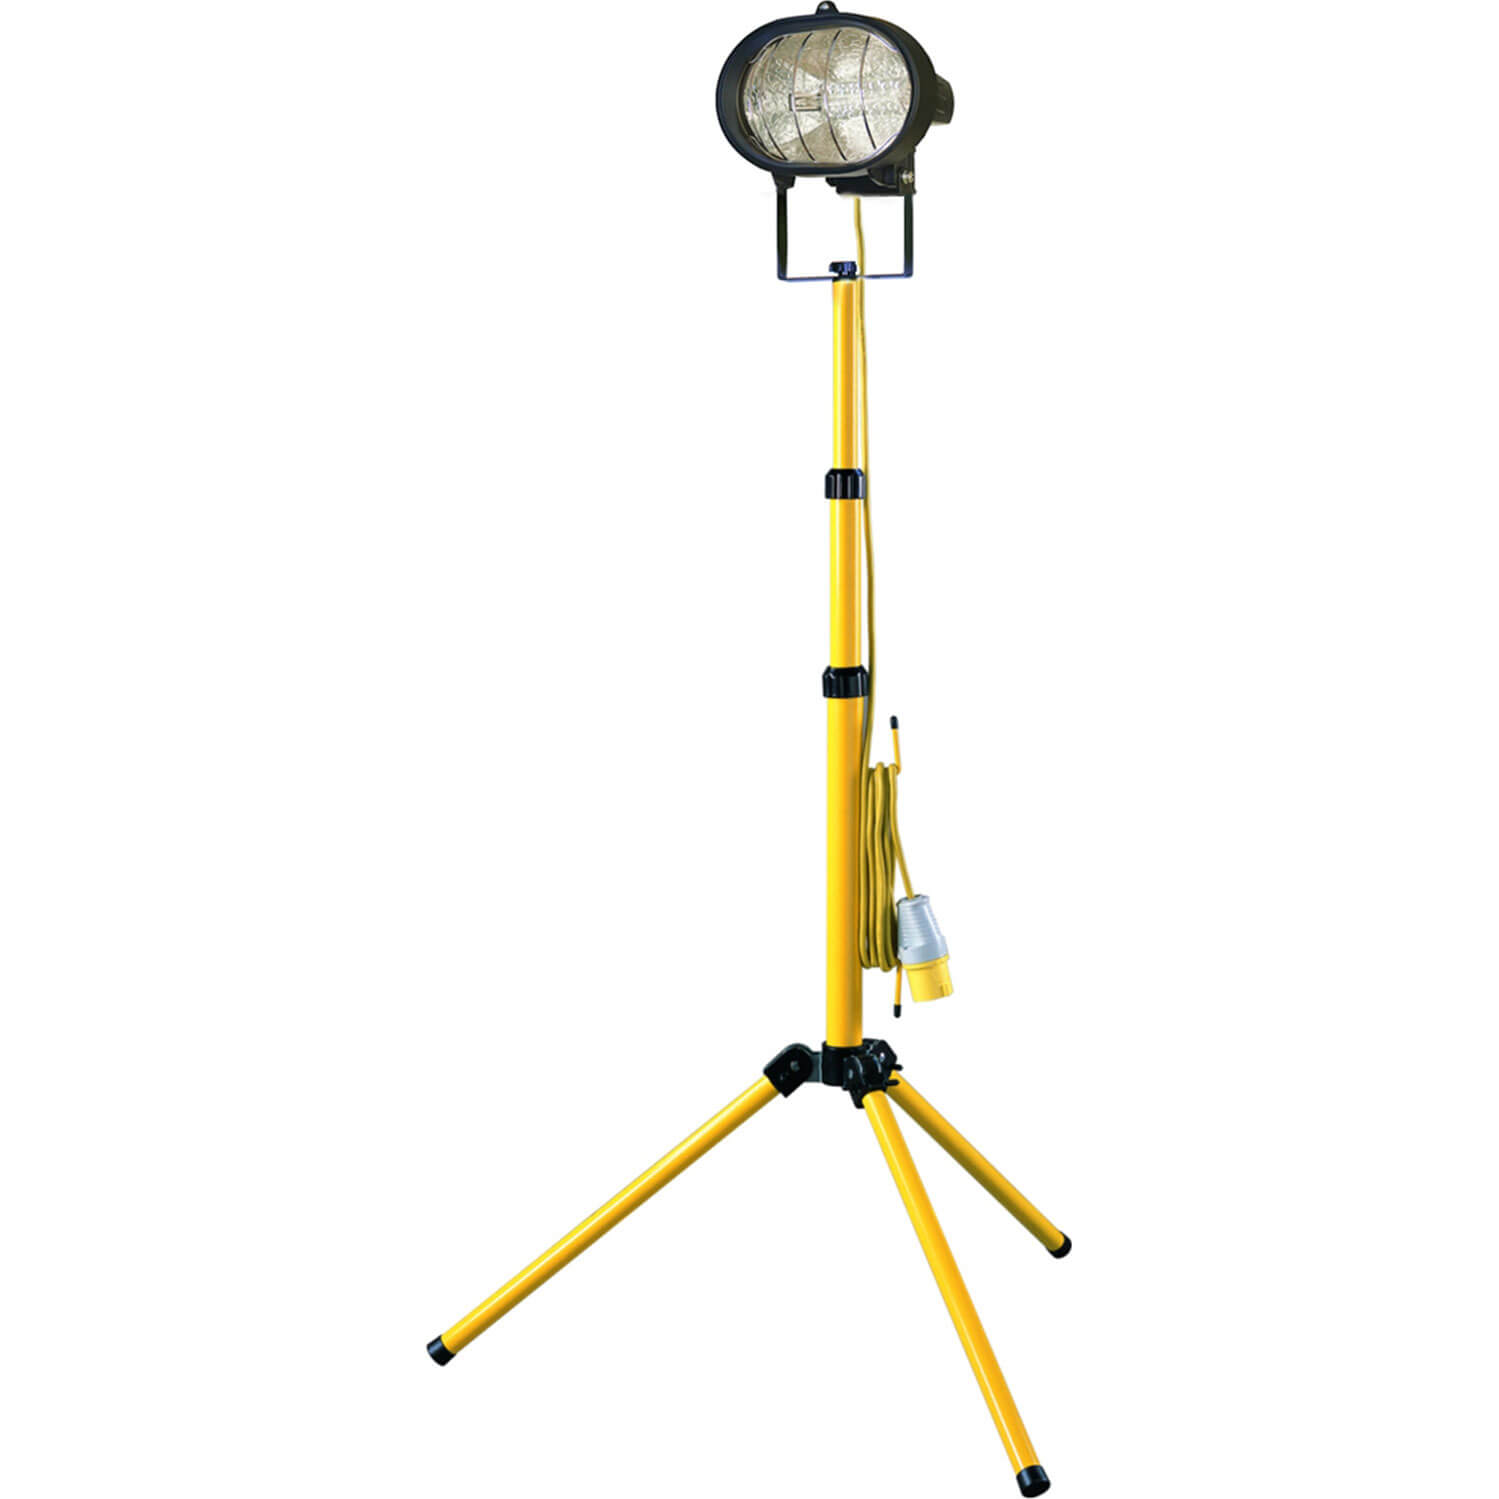 Image of Faithfull Halogen Single Site Light with Adjustable Stand 500w 110v